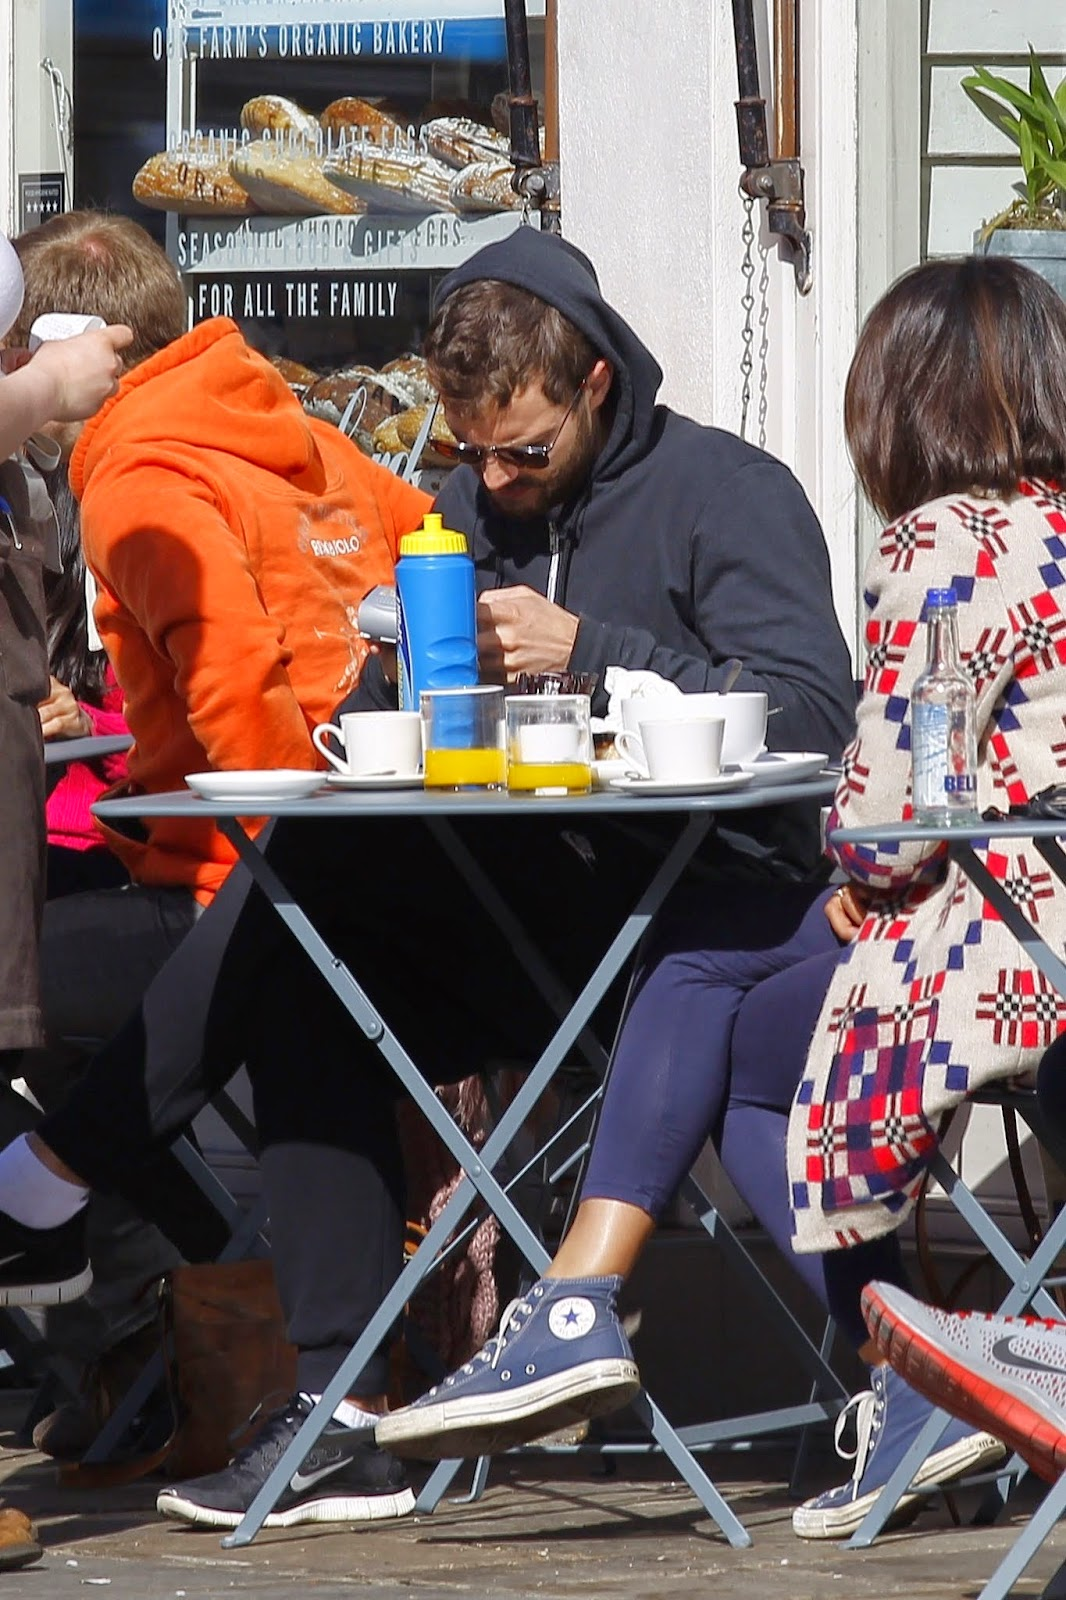 New Pictures of Jamie and Amelia having a breakfast in London -- April 18